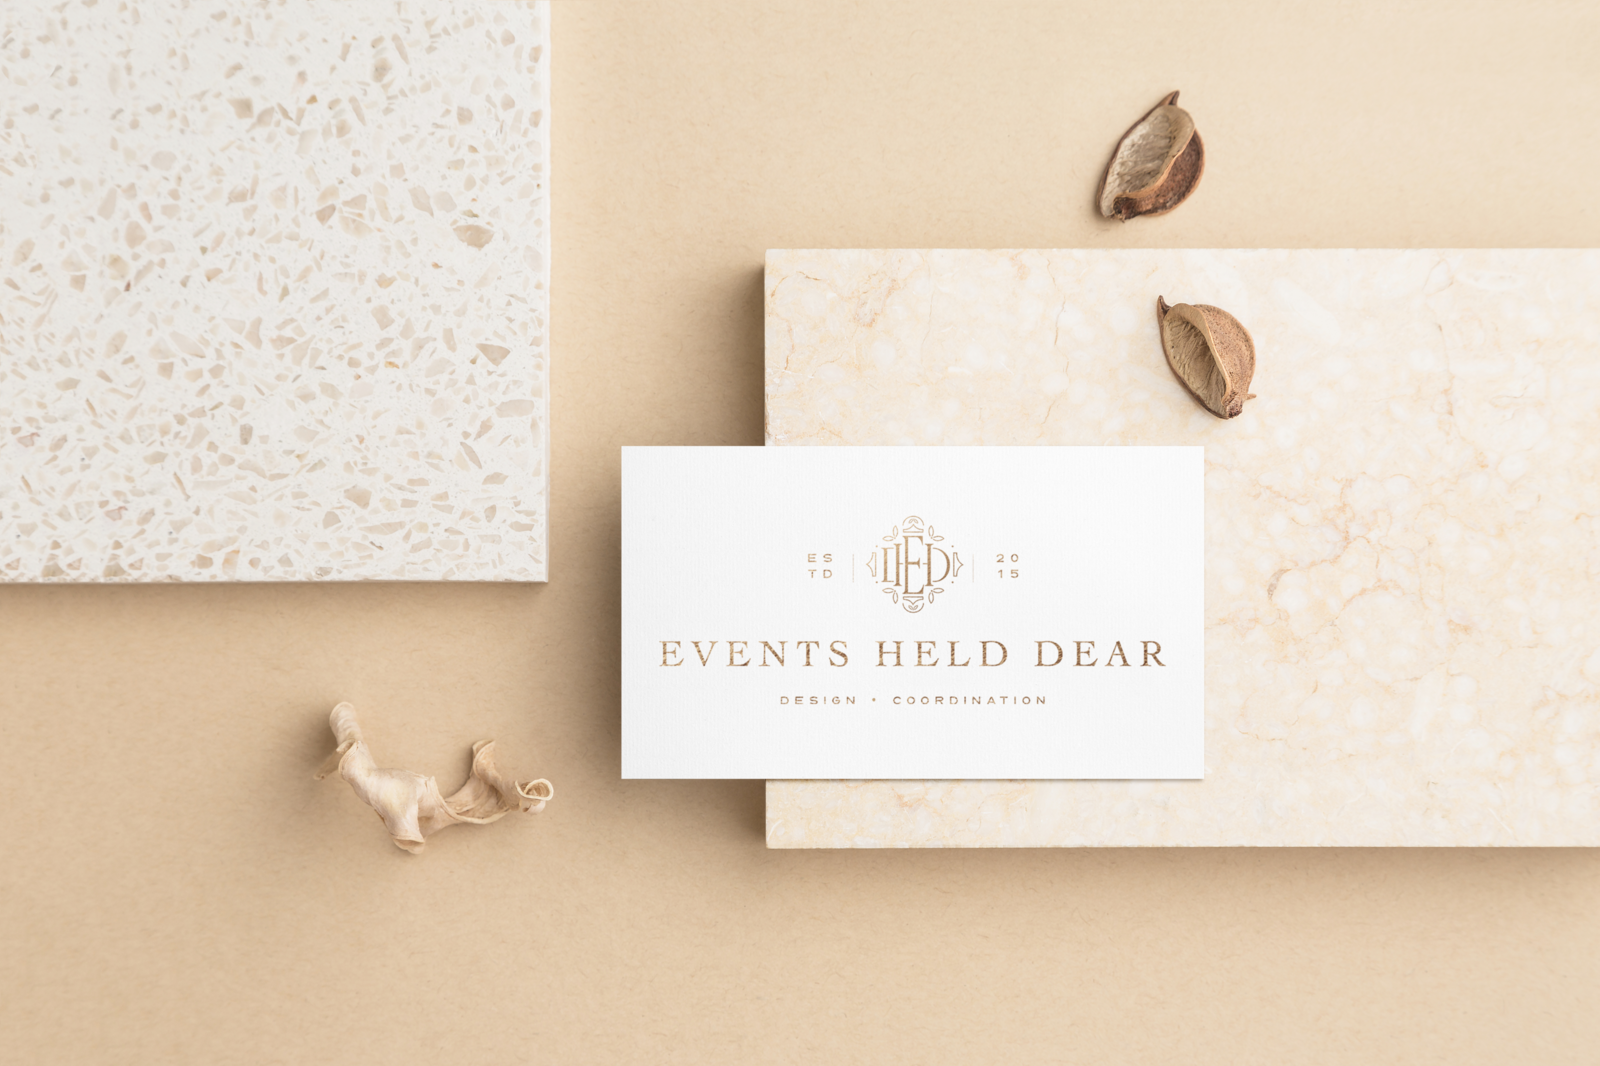 Events Held Dear - Custom Brand and Showit Web Design by With Grace and Gold - Branding and Web Design for Wedding andn Event Planners - 5